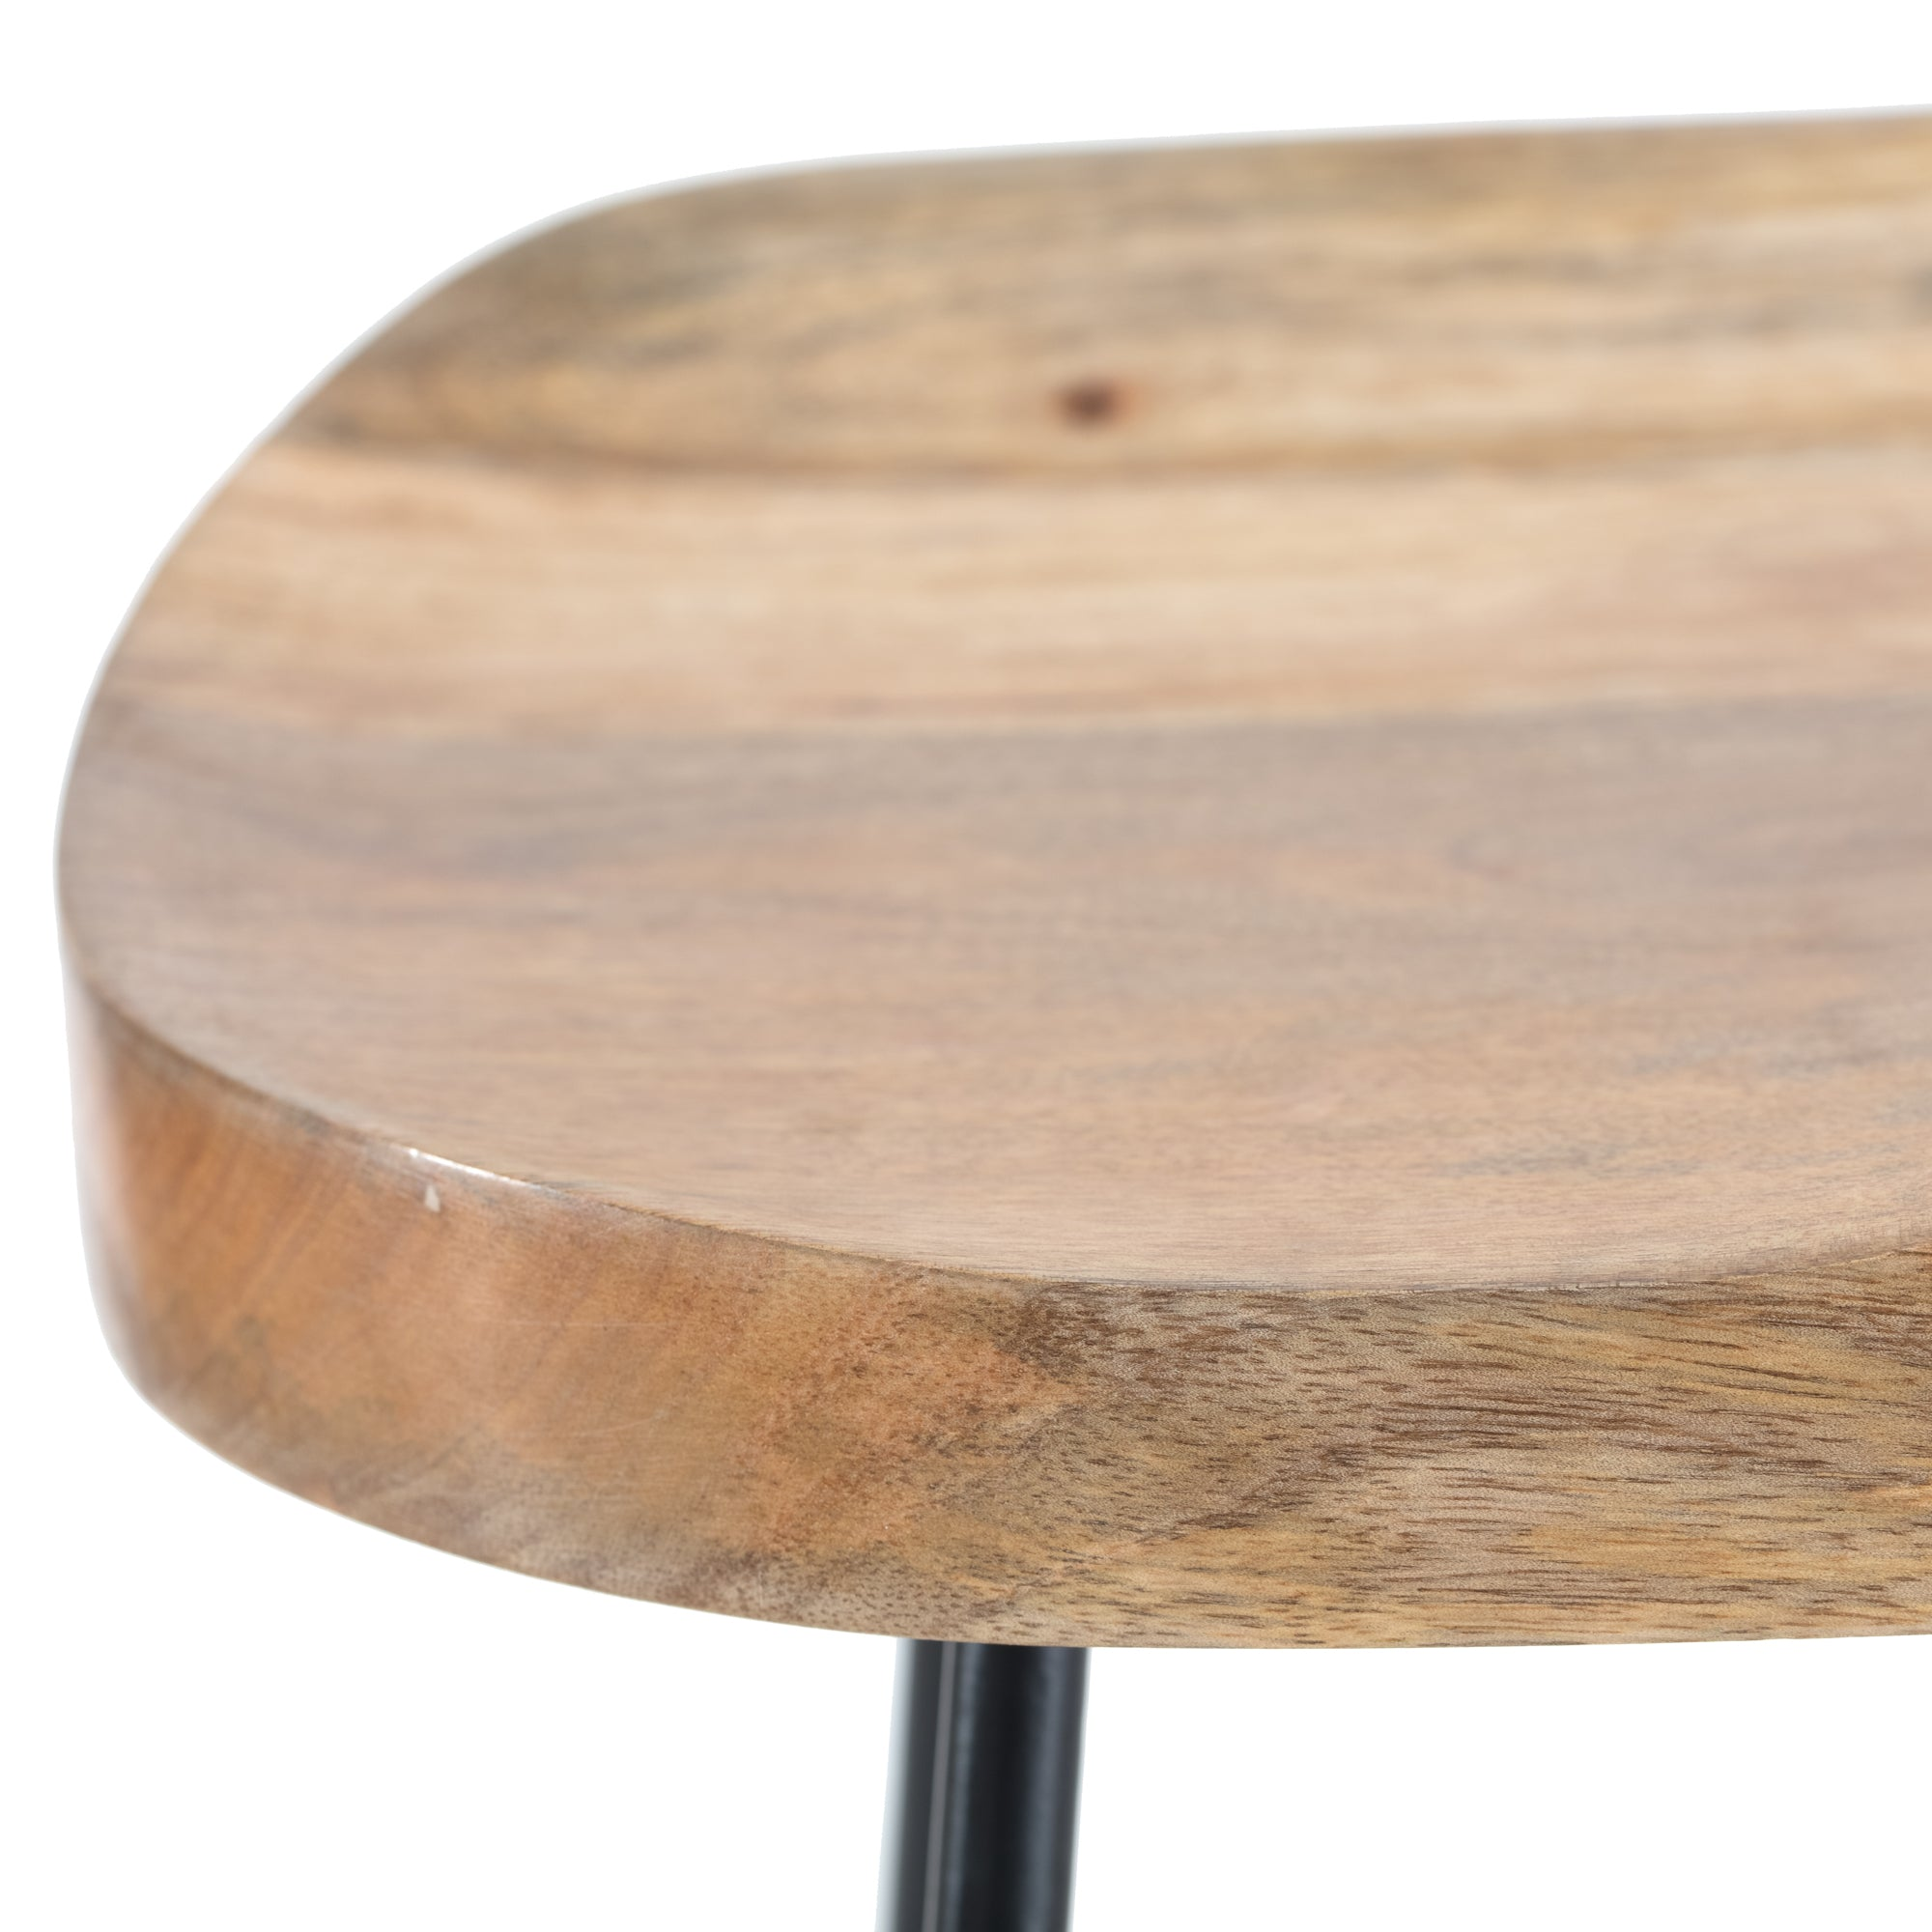 Remarkable Rombass Bar Stool With Wooden Seat Lamtechconsult Wood Chair Design Ideas Lamtechconsultcom